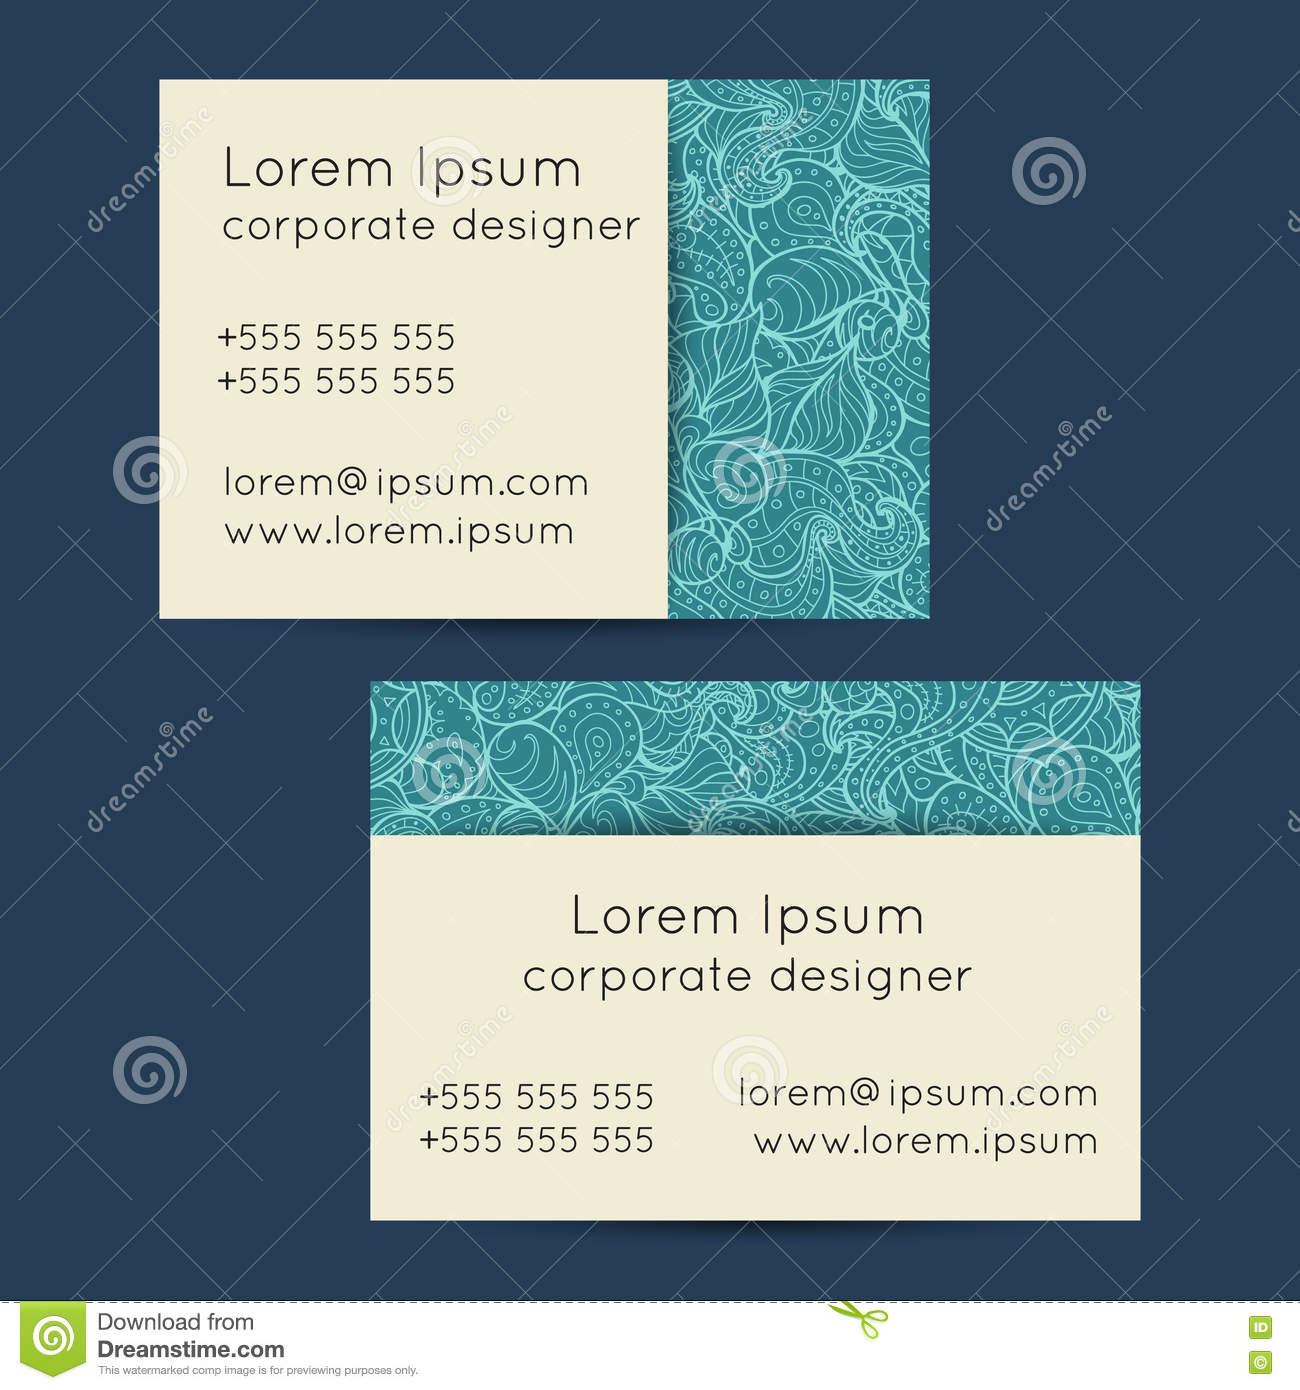 Paisley business cards images free business cards paisley business cards choice image free business cards paisley business cards images free business cards floral magicingreecefo Images